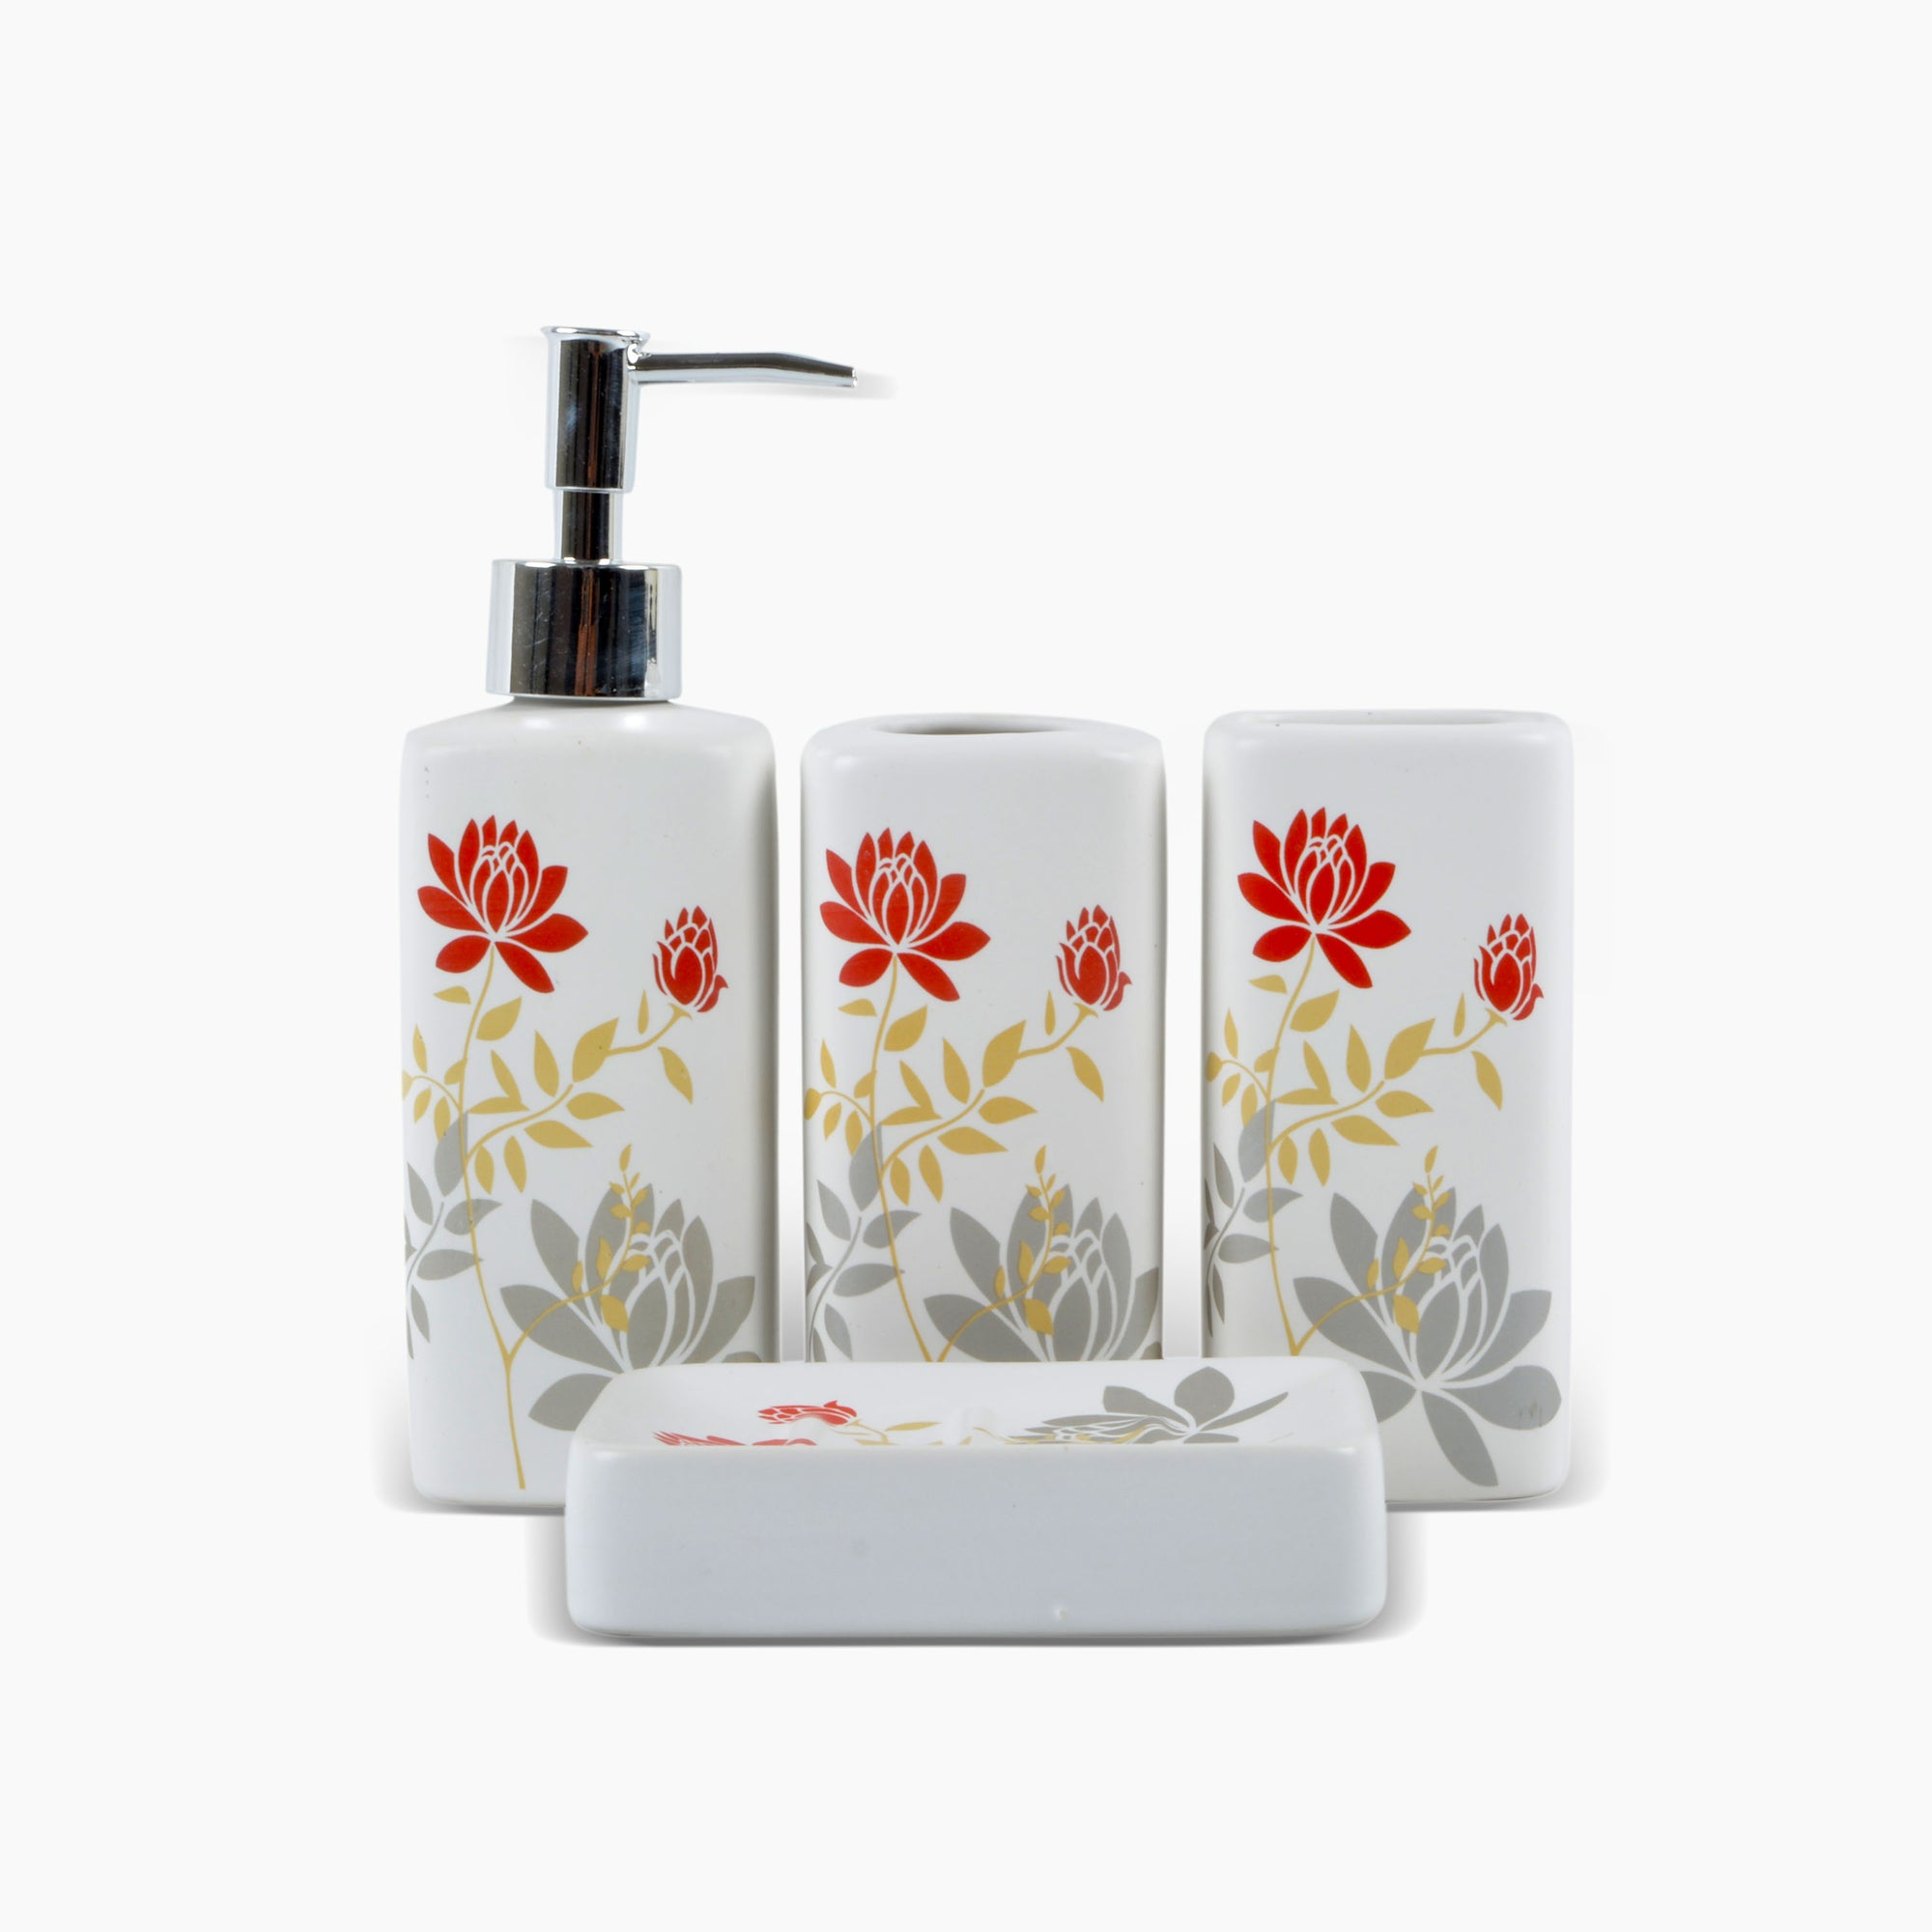 Abstract Design Bathroom Set